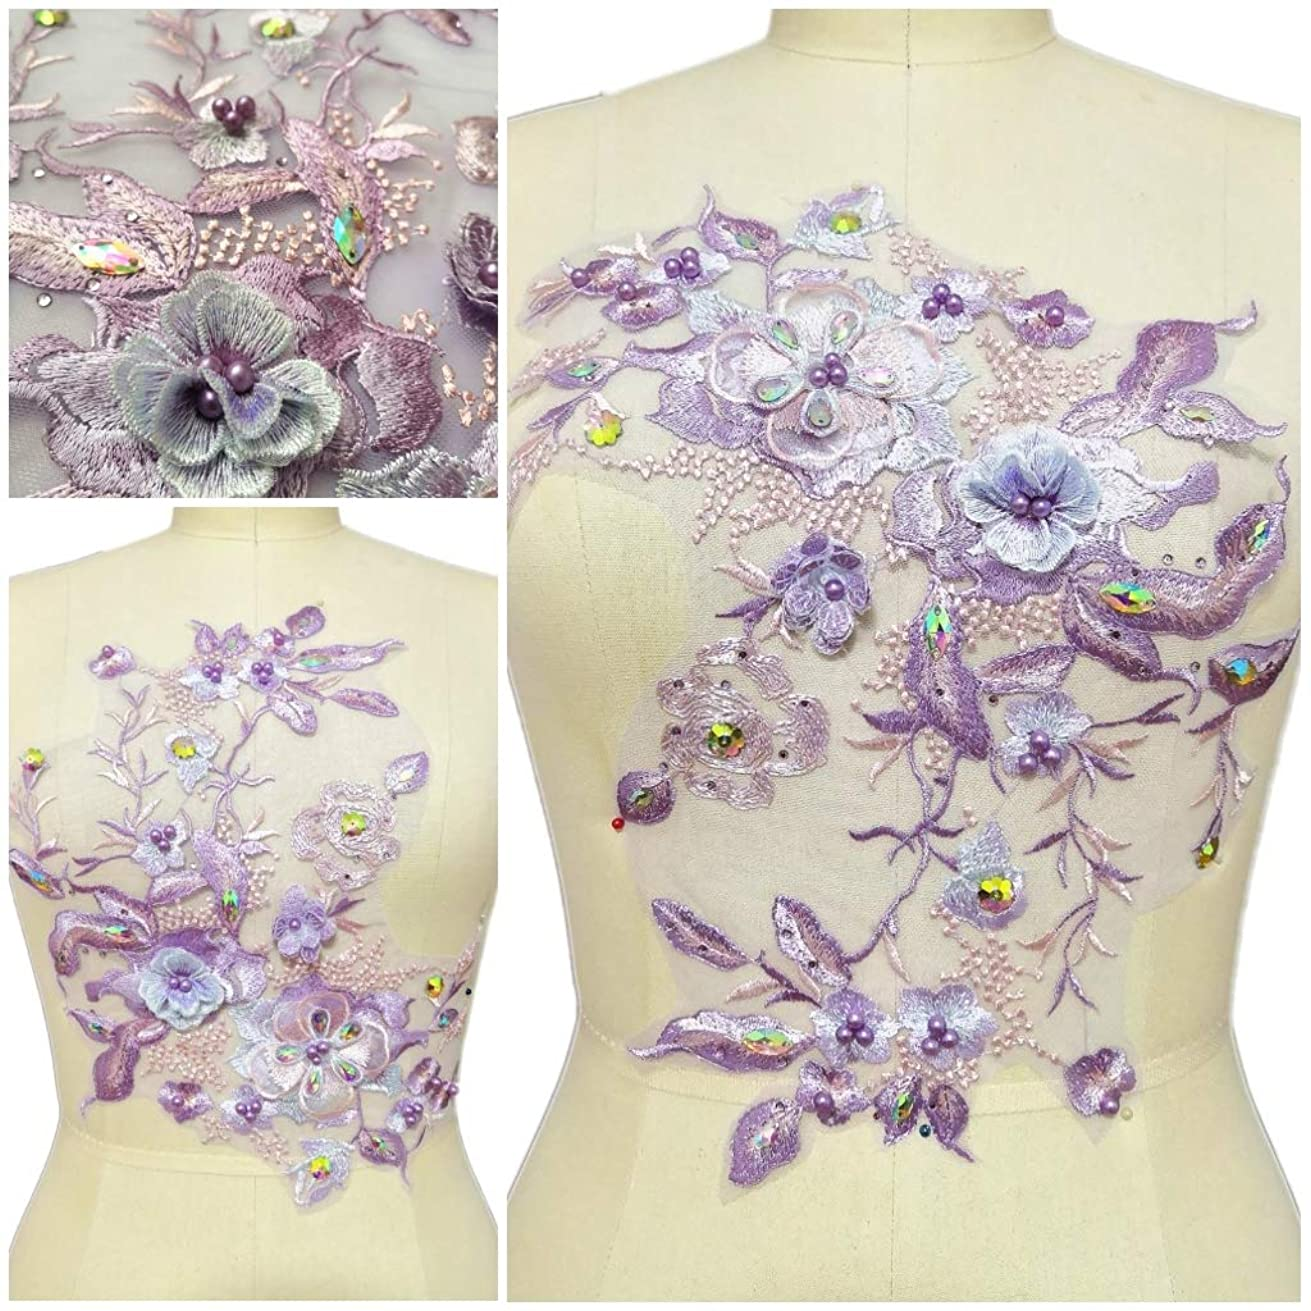 Rhinestone Pearl 3D Embroidery Lace Applique Motif Sewing of Lining Fabric Blouse Lace Patches Wedding Dress Accessories (Color B)